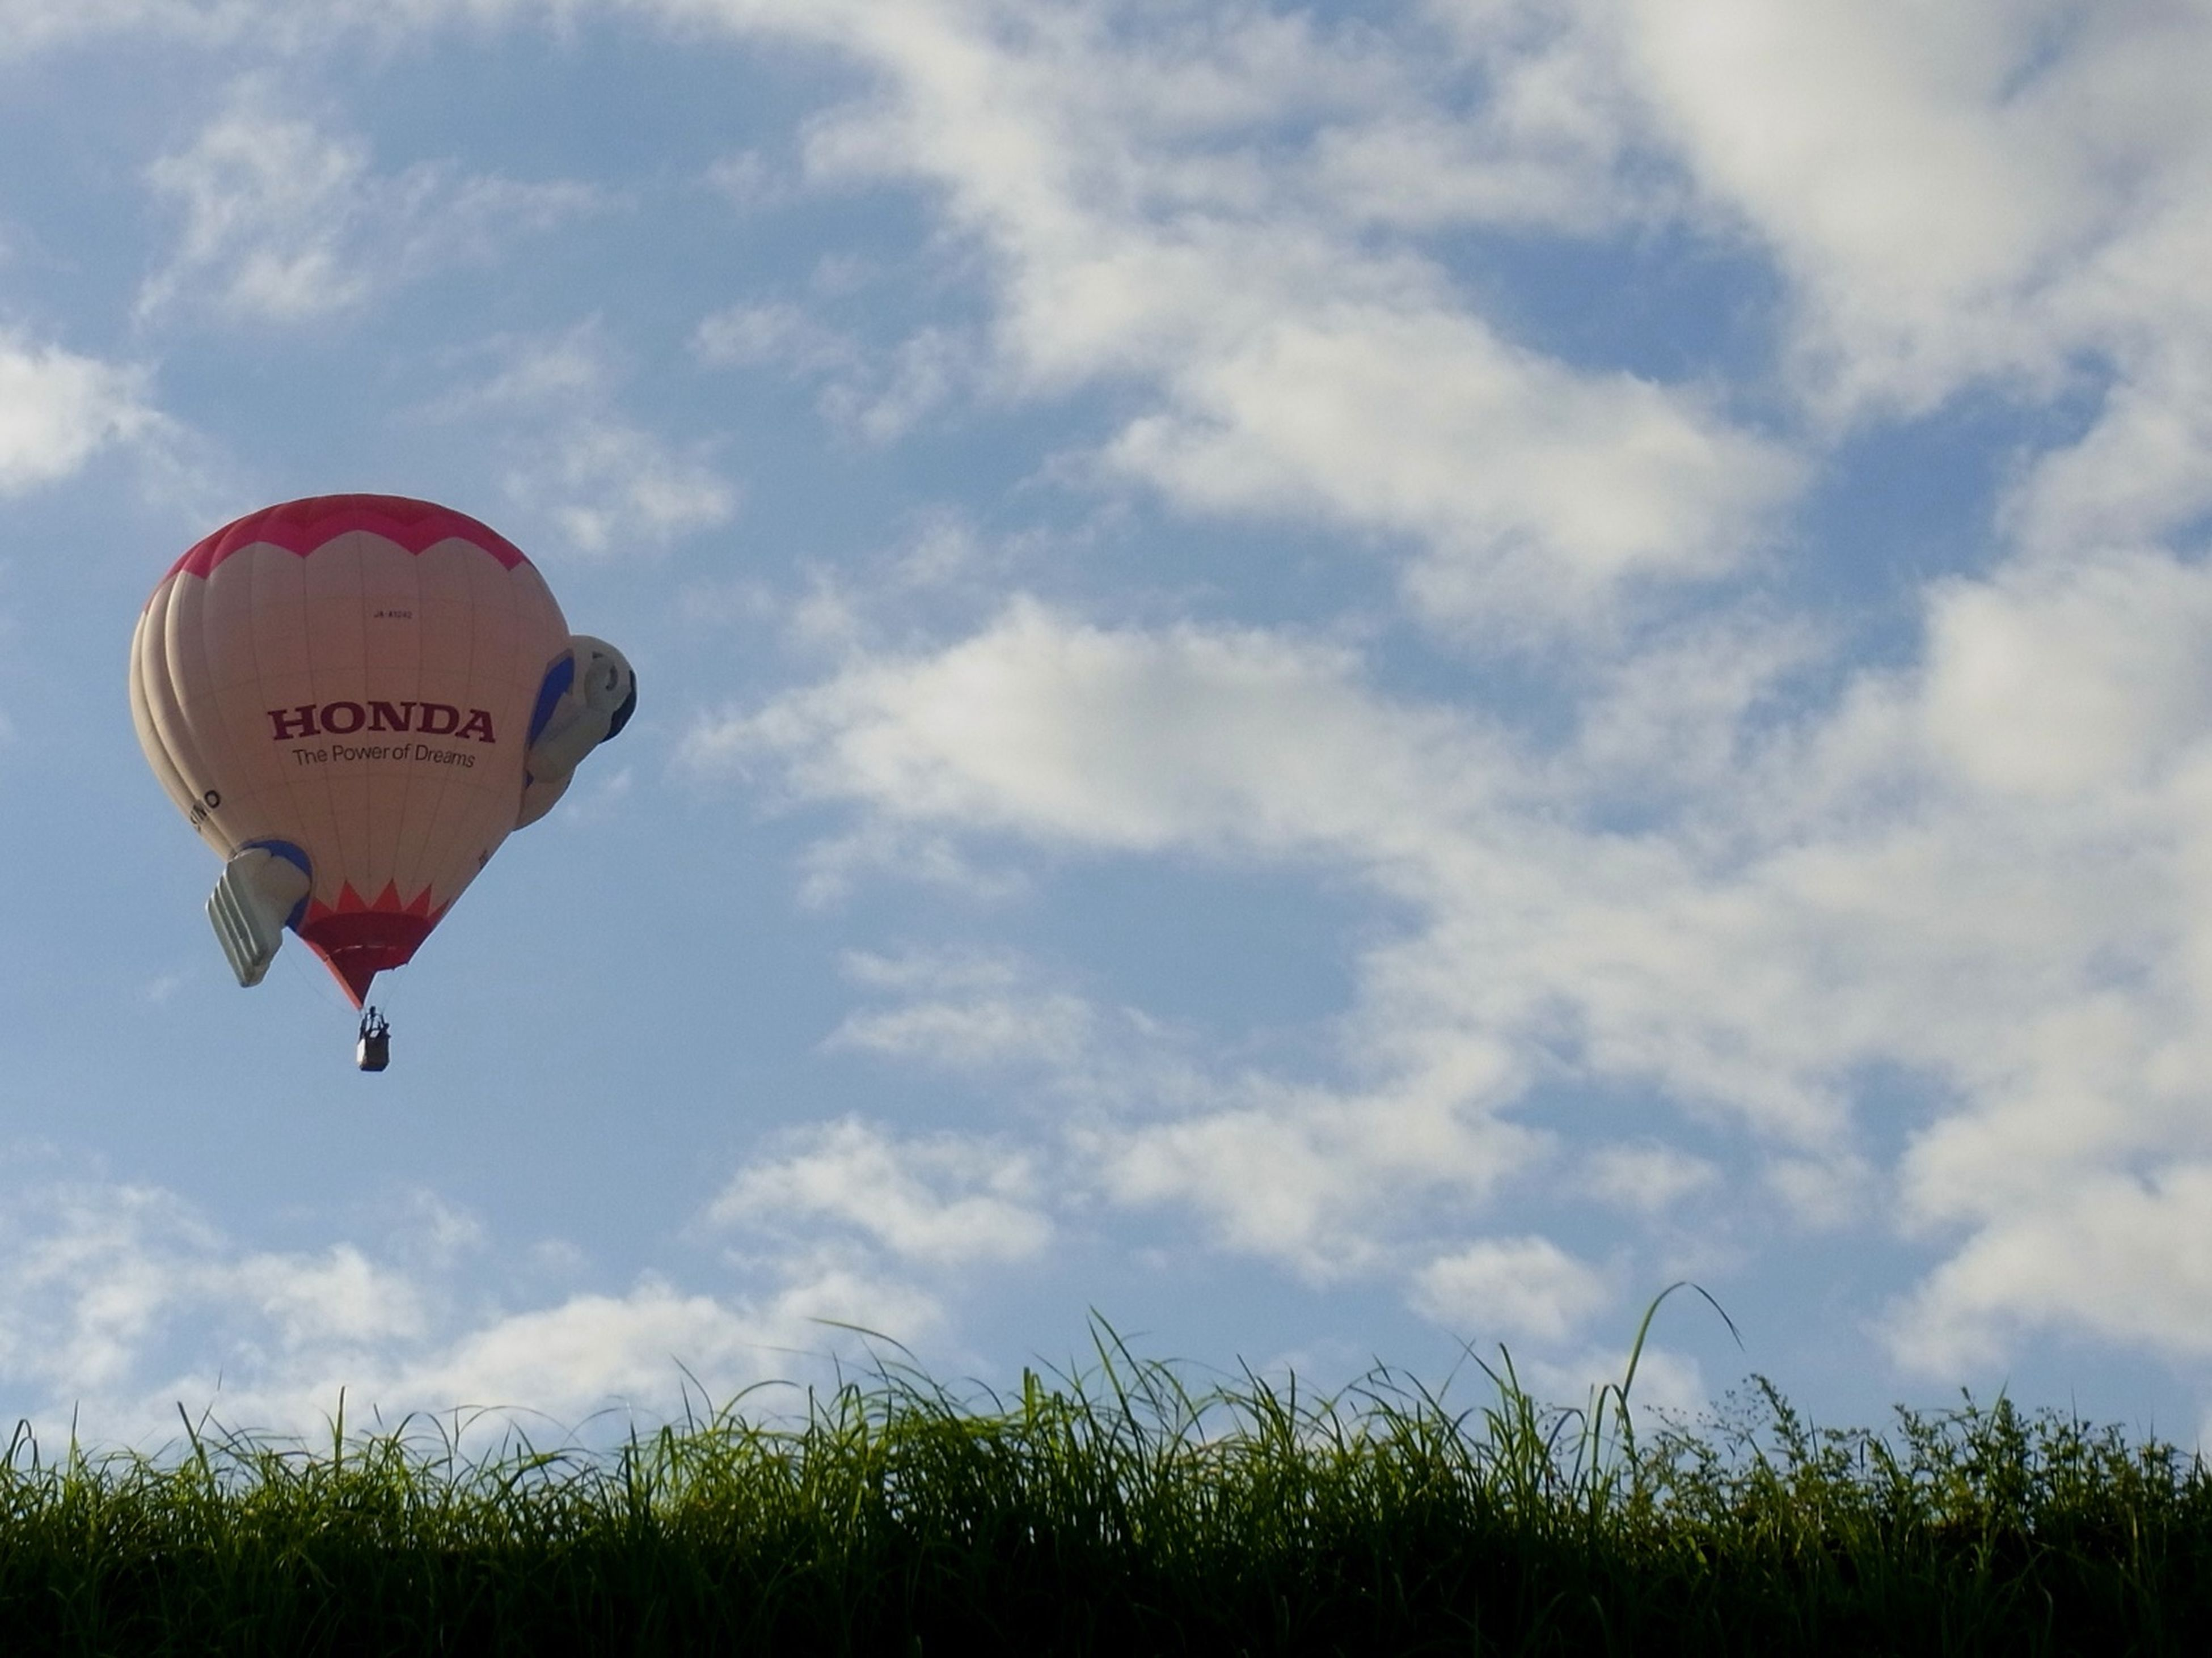 sky, cloud - sky, cloud, low angle view, cloudy, grass, nature, tranquility, field, day, growth, outdoors, plant, scenics, tranquil scene, beauty in nature, hot air balloon, flying, tree, no people